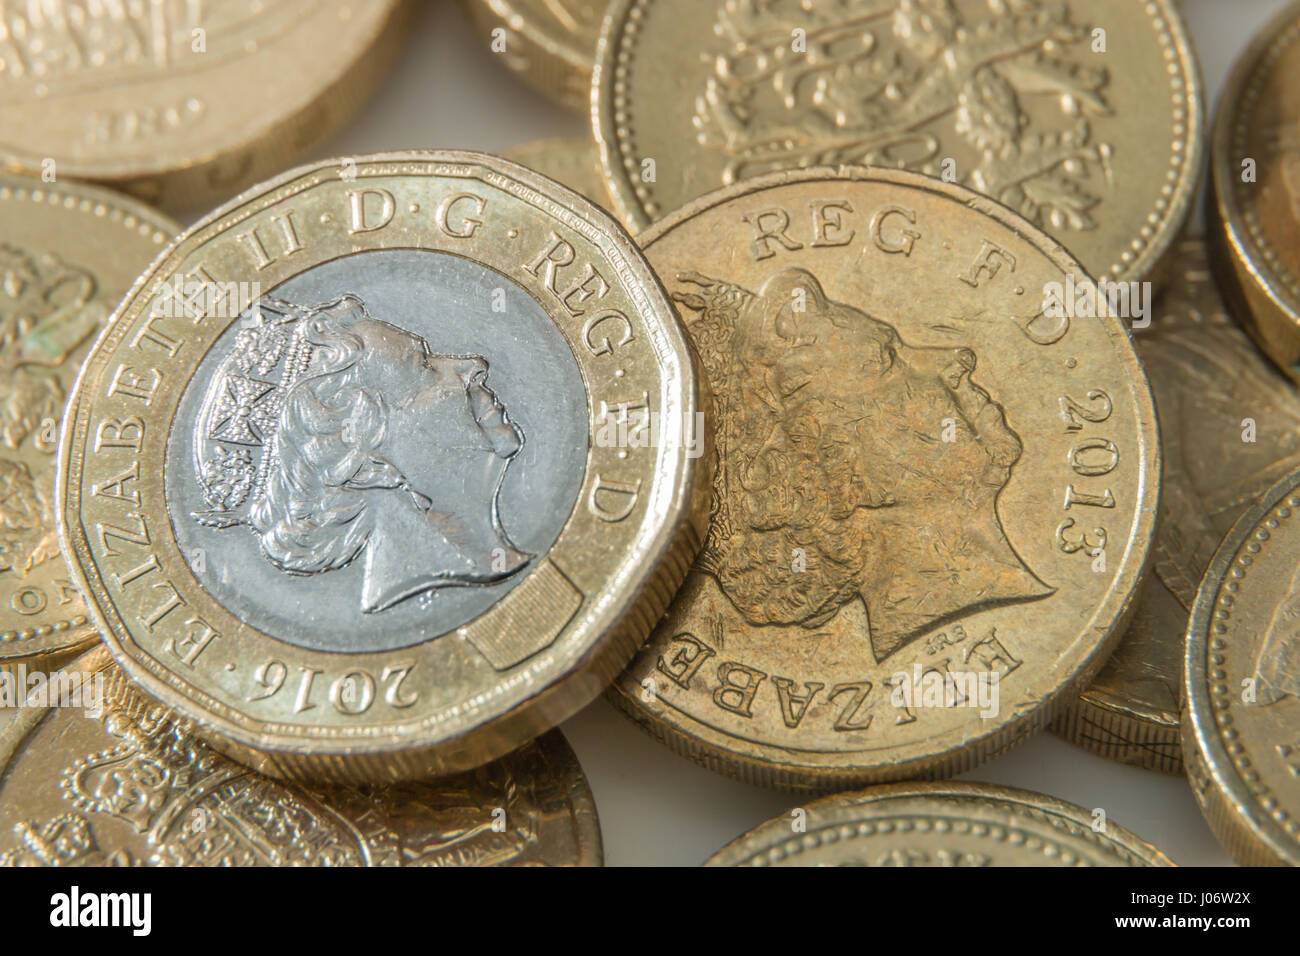 The new 12 sided British Pound Coin on top of the older round coins - Stock Image